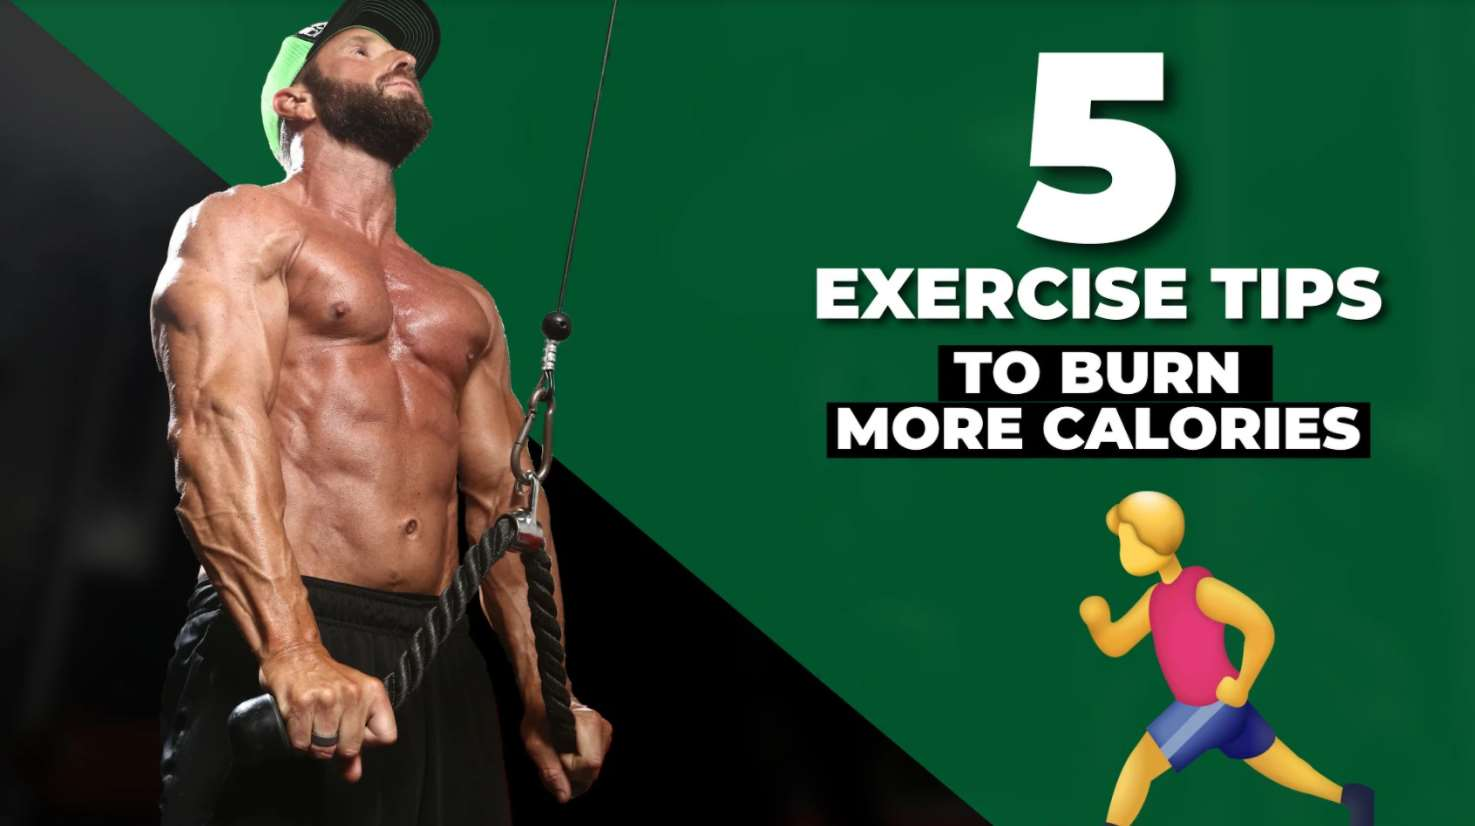 Exercise Tips for Burning More Calories